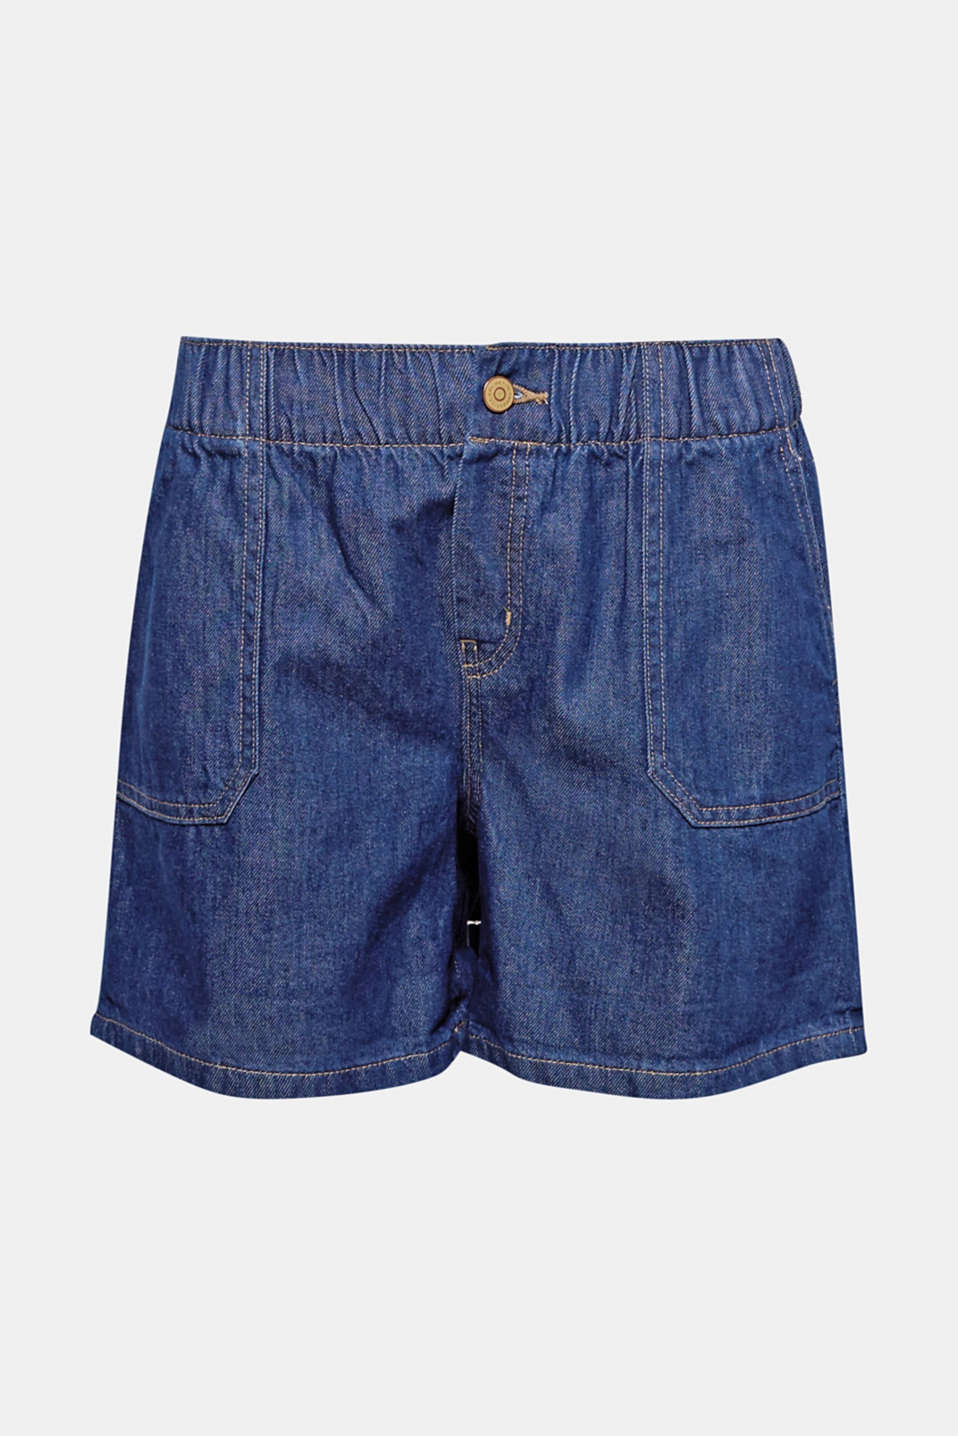 Dein absolutes Must-Have-Basic für den Summer: Denim-Short aus weicher Bio-Baumwolle mit Gummizugbund.